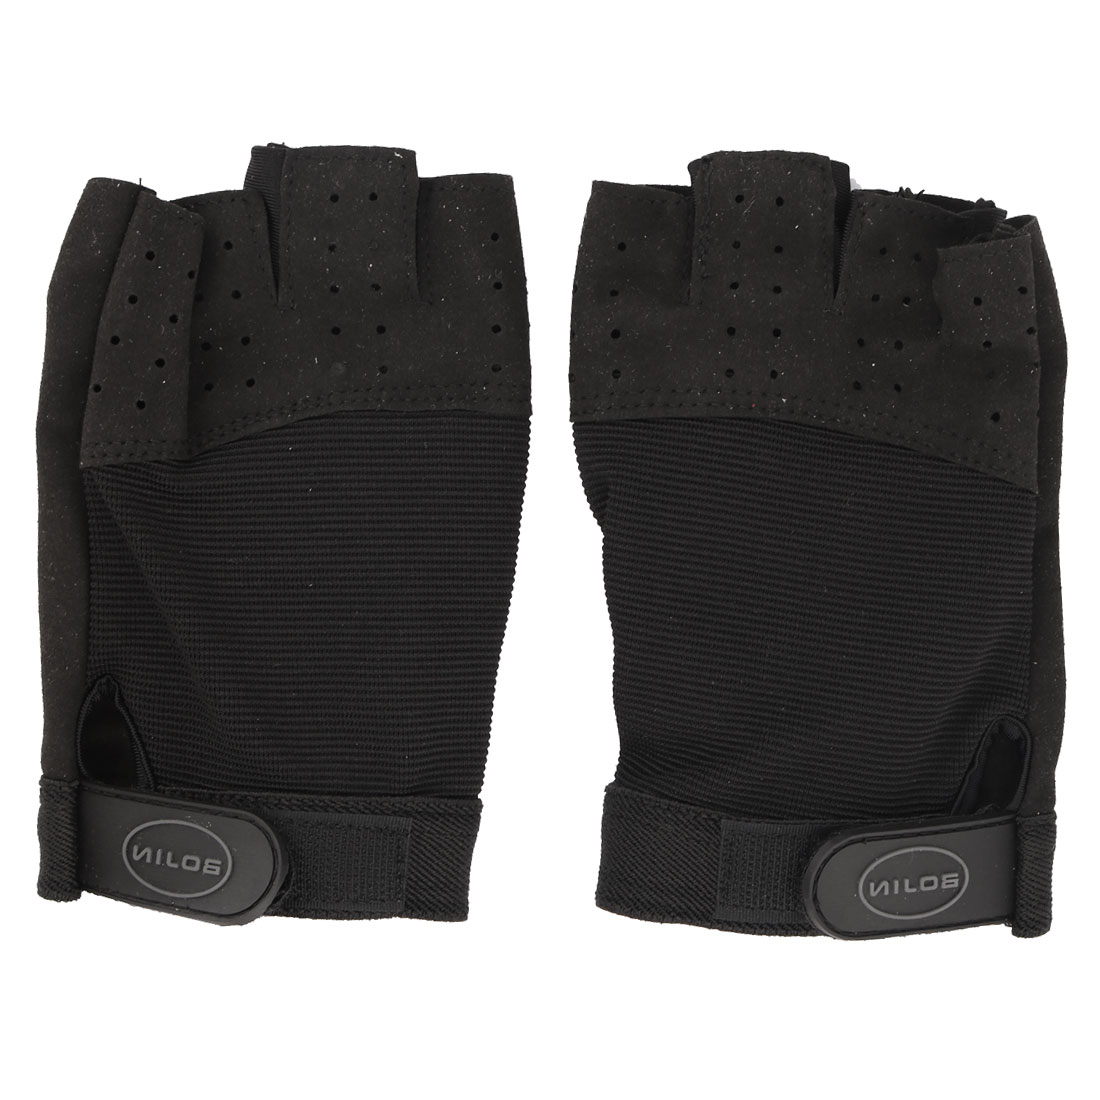 Neoprene Half Finger Design Training Sports Gloves Hands Protector Black Pair